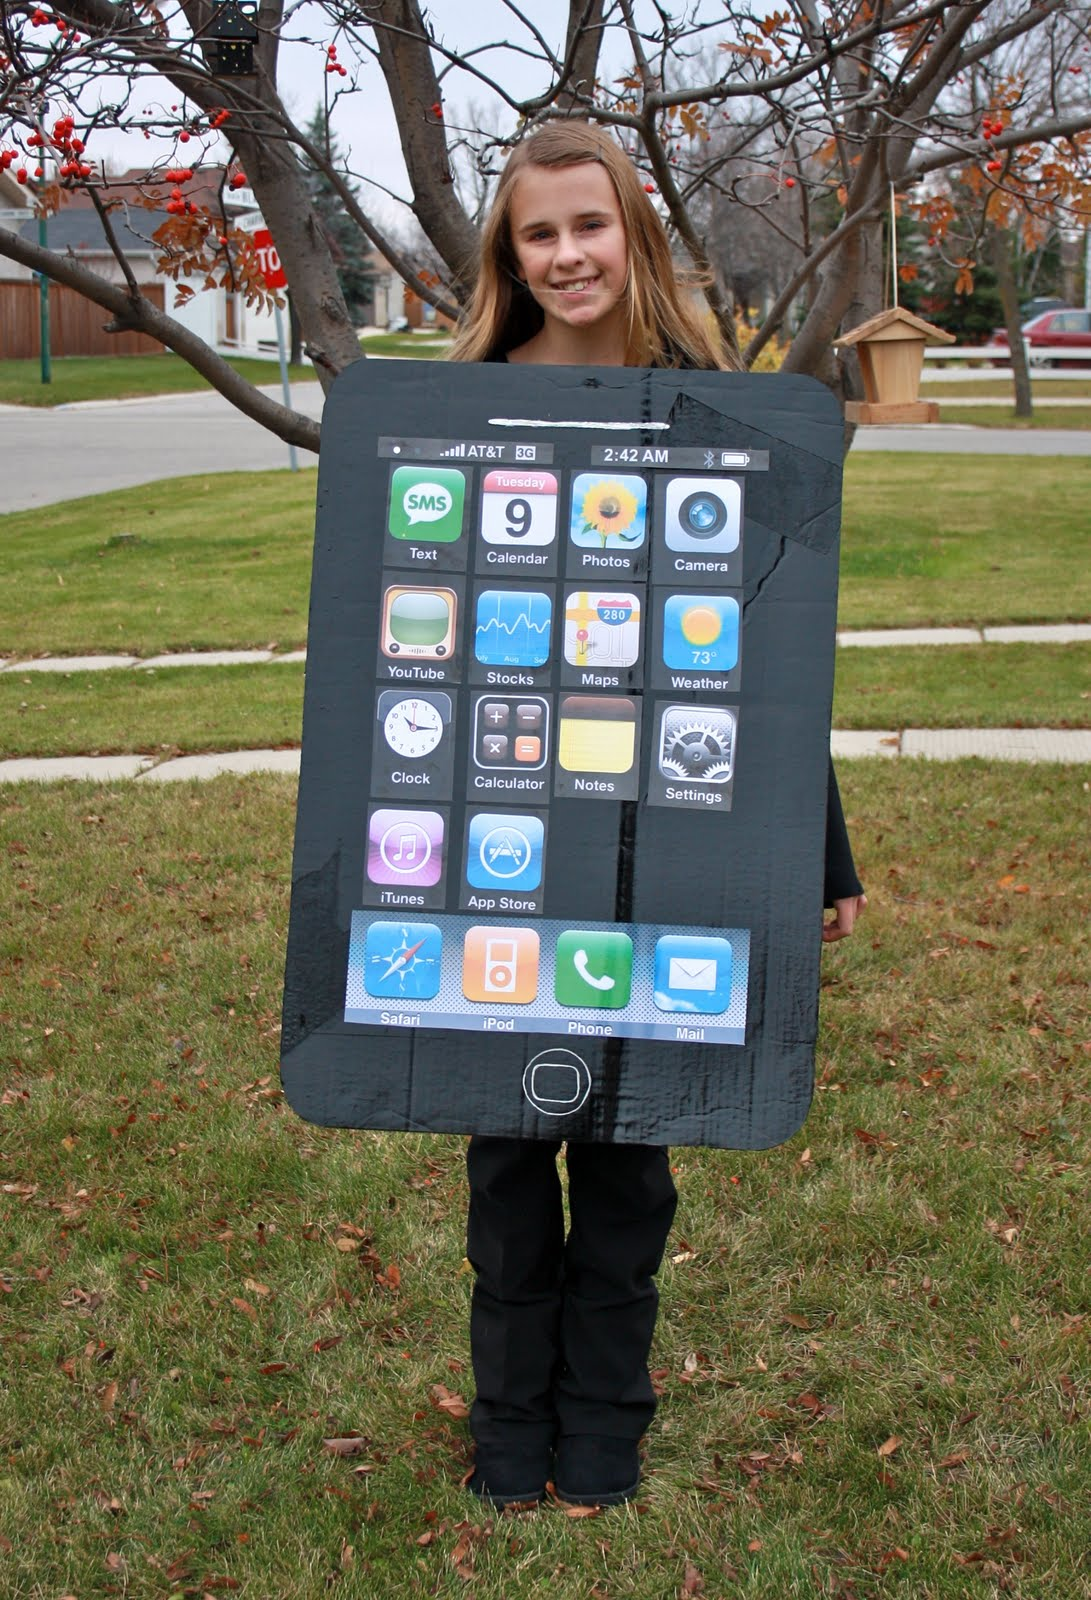 iphone costume. and here is kiandra in her iphone costume which i think totally rocks! (i was thinking of you candice as making it!) iphone